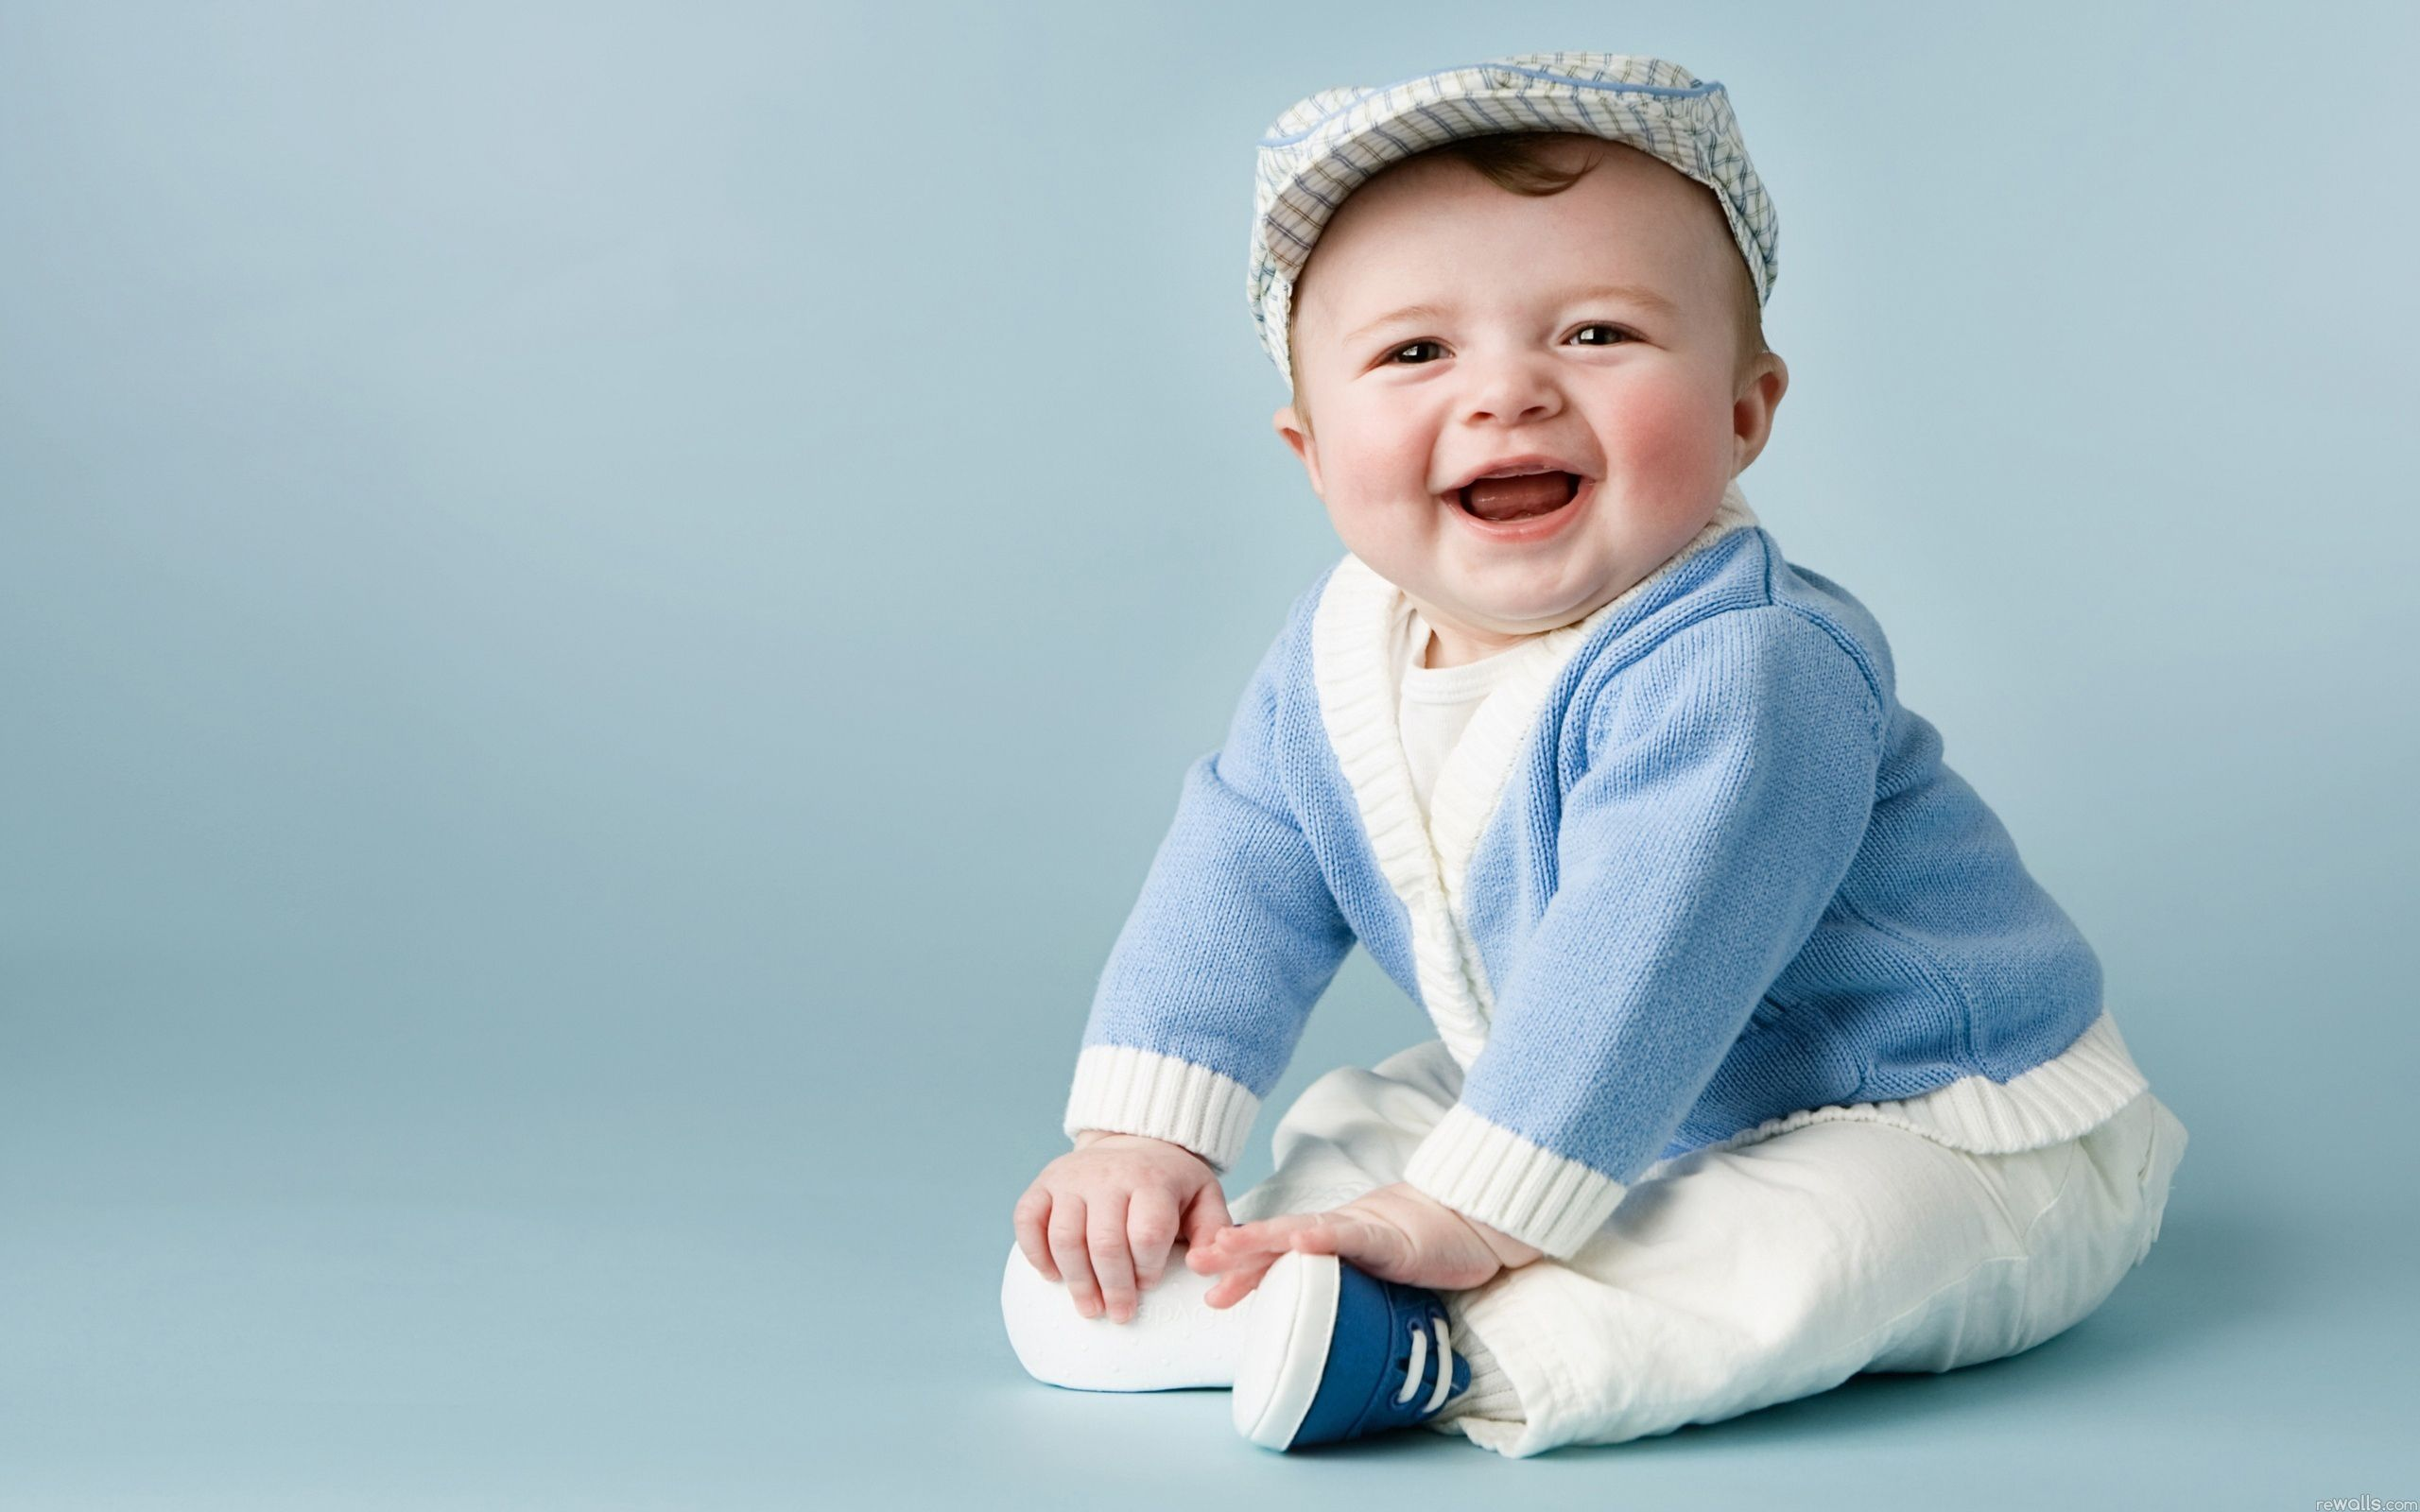 Smiling Baby Wallpapers Hd Wallpapers Laptop Wallpapers Cute Baby Boy Pictures Cute Baby Wallpaper Cute Baby Boy Images